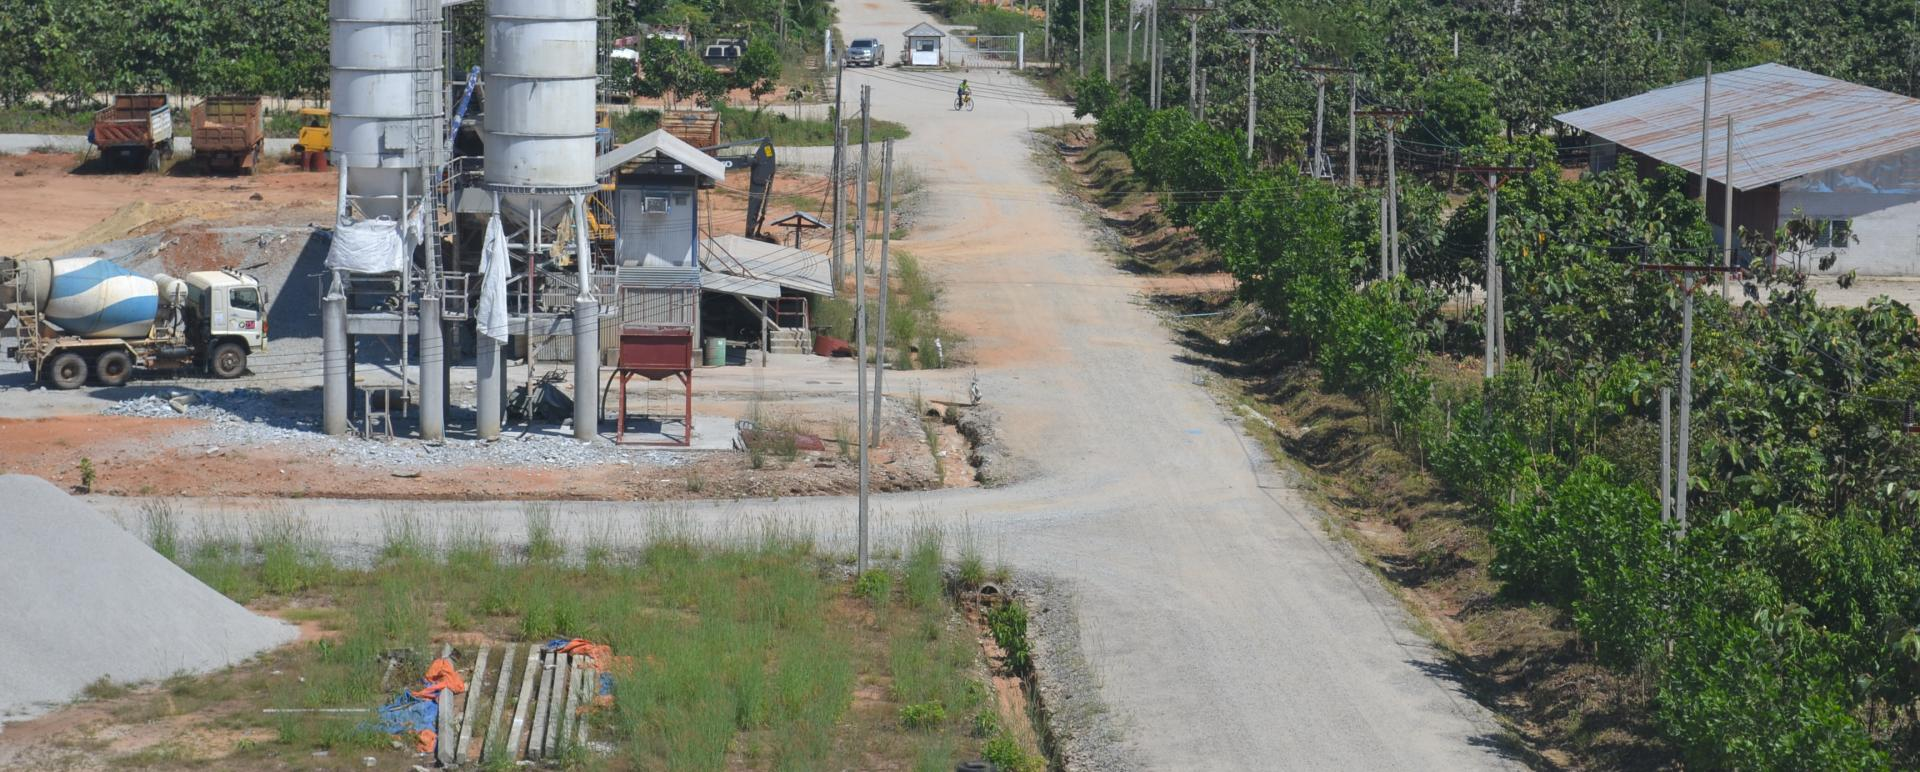 Two-lane road connecting Myanmar's Dawei SEZ with Thailand ...